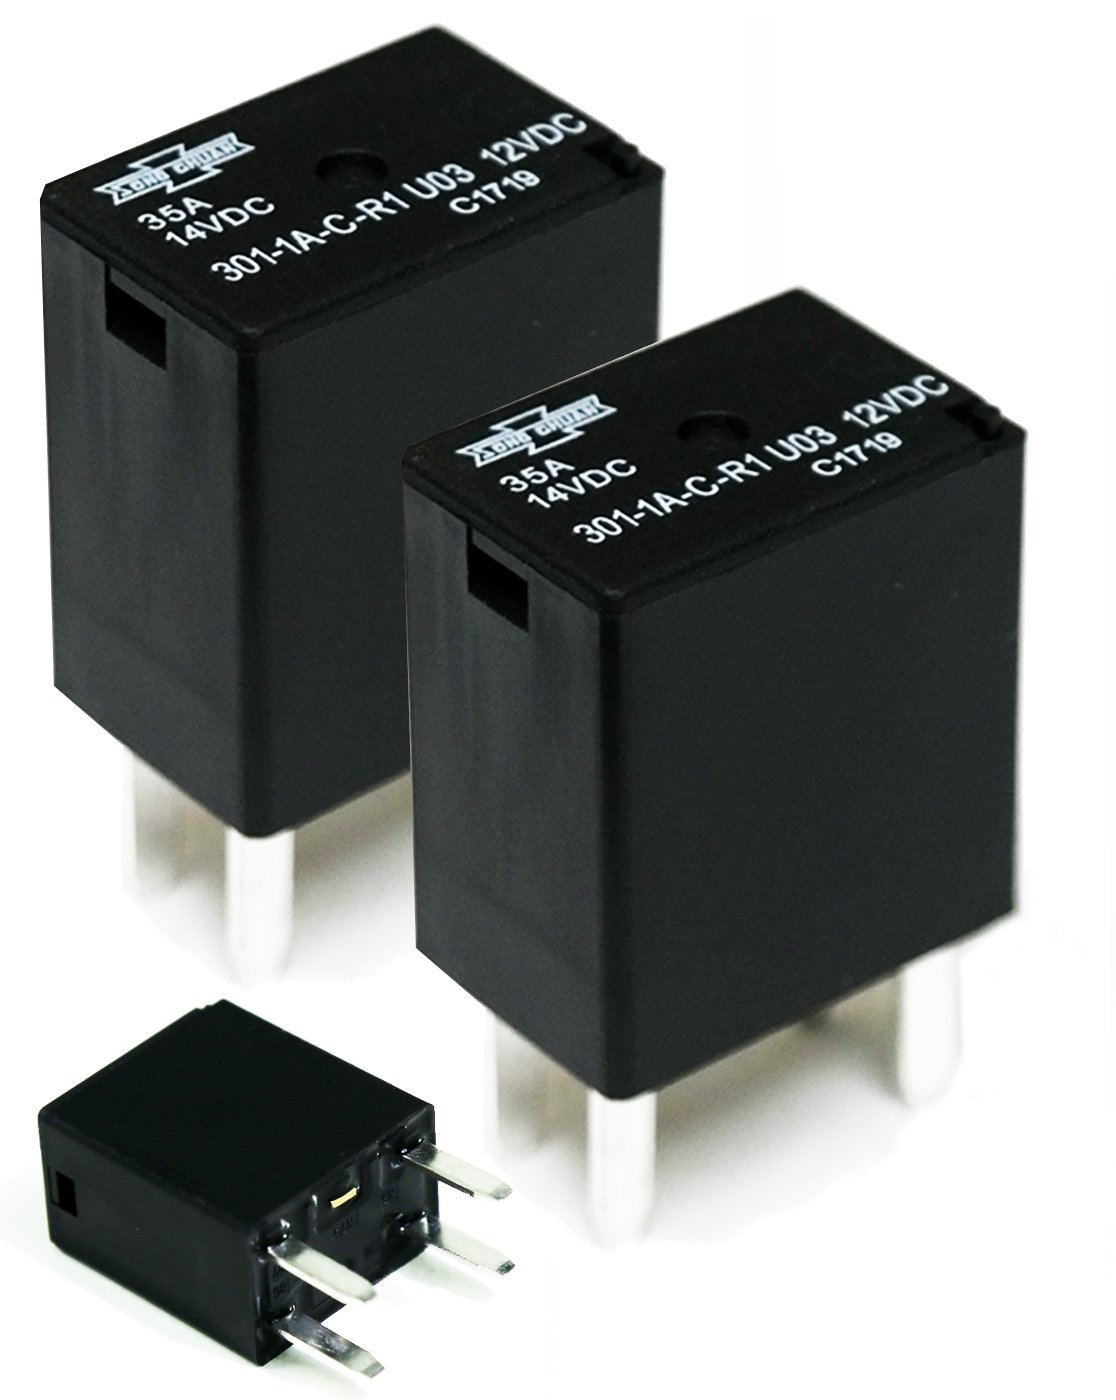 Song Chuan 301-1A-C-R1-U03 12VDC Micro 280 SPST 35A Relay (Pack of 2)